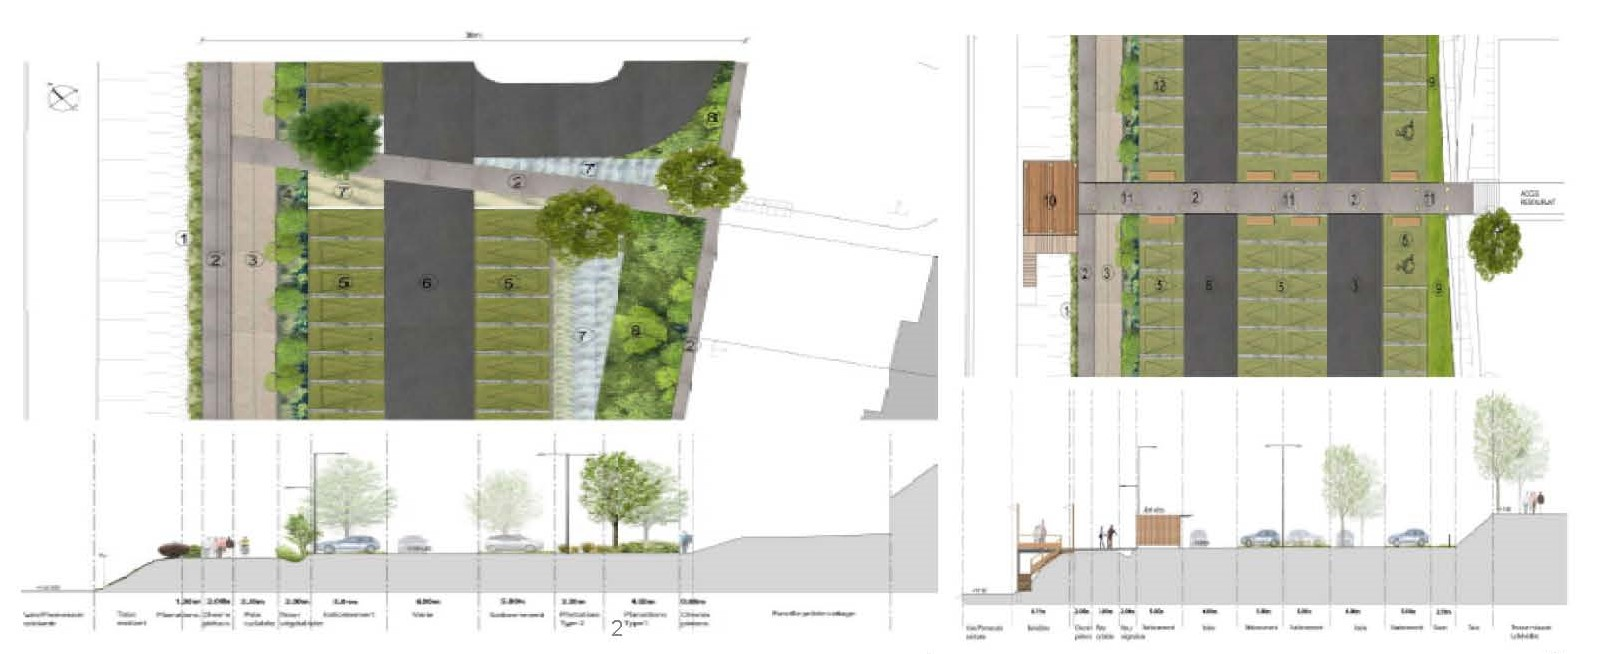 04 projet ABORDS DU LAC MESNIL ST PERE